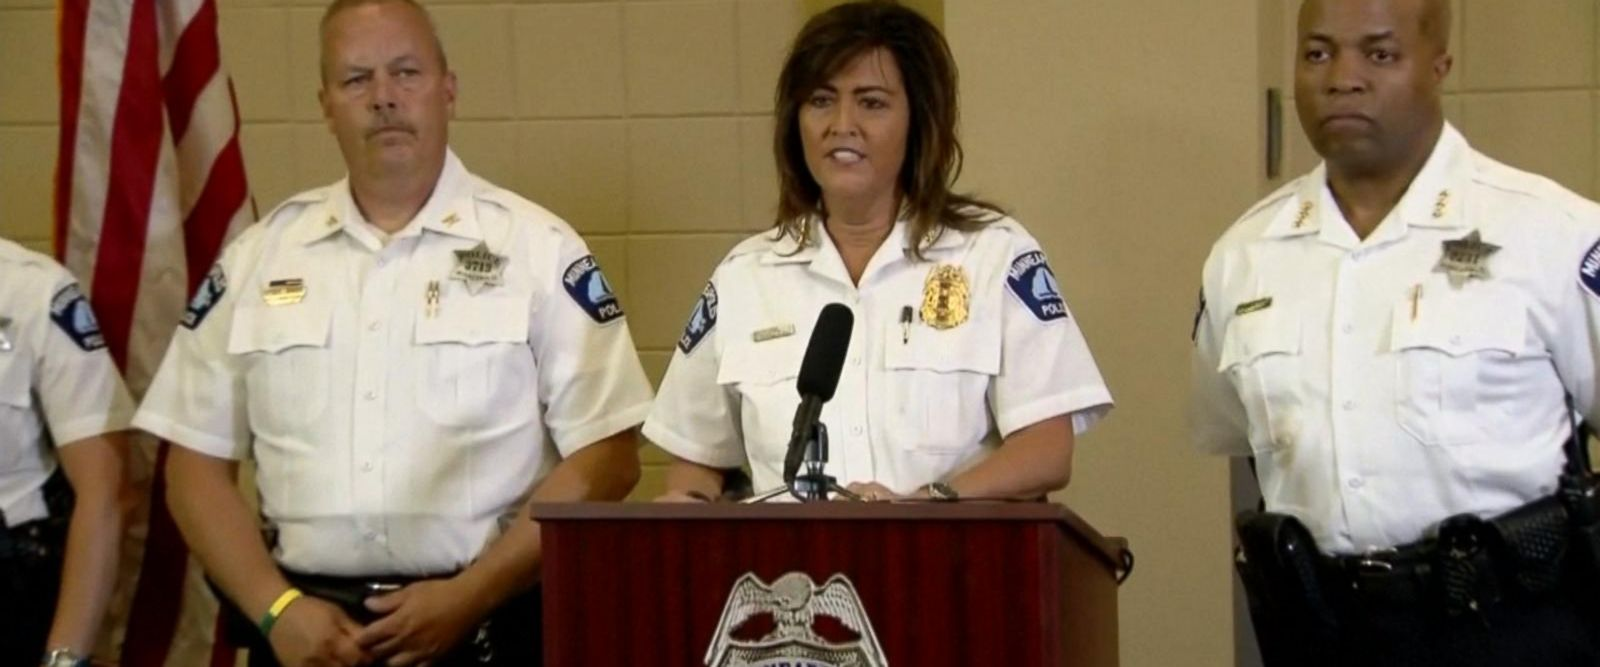 VIDEO: Minneapolis police chief resigns in fallout from bride-to-be's death at the hands of police